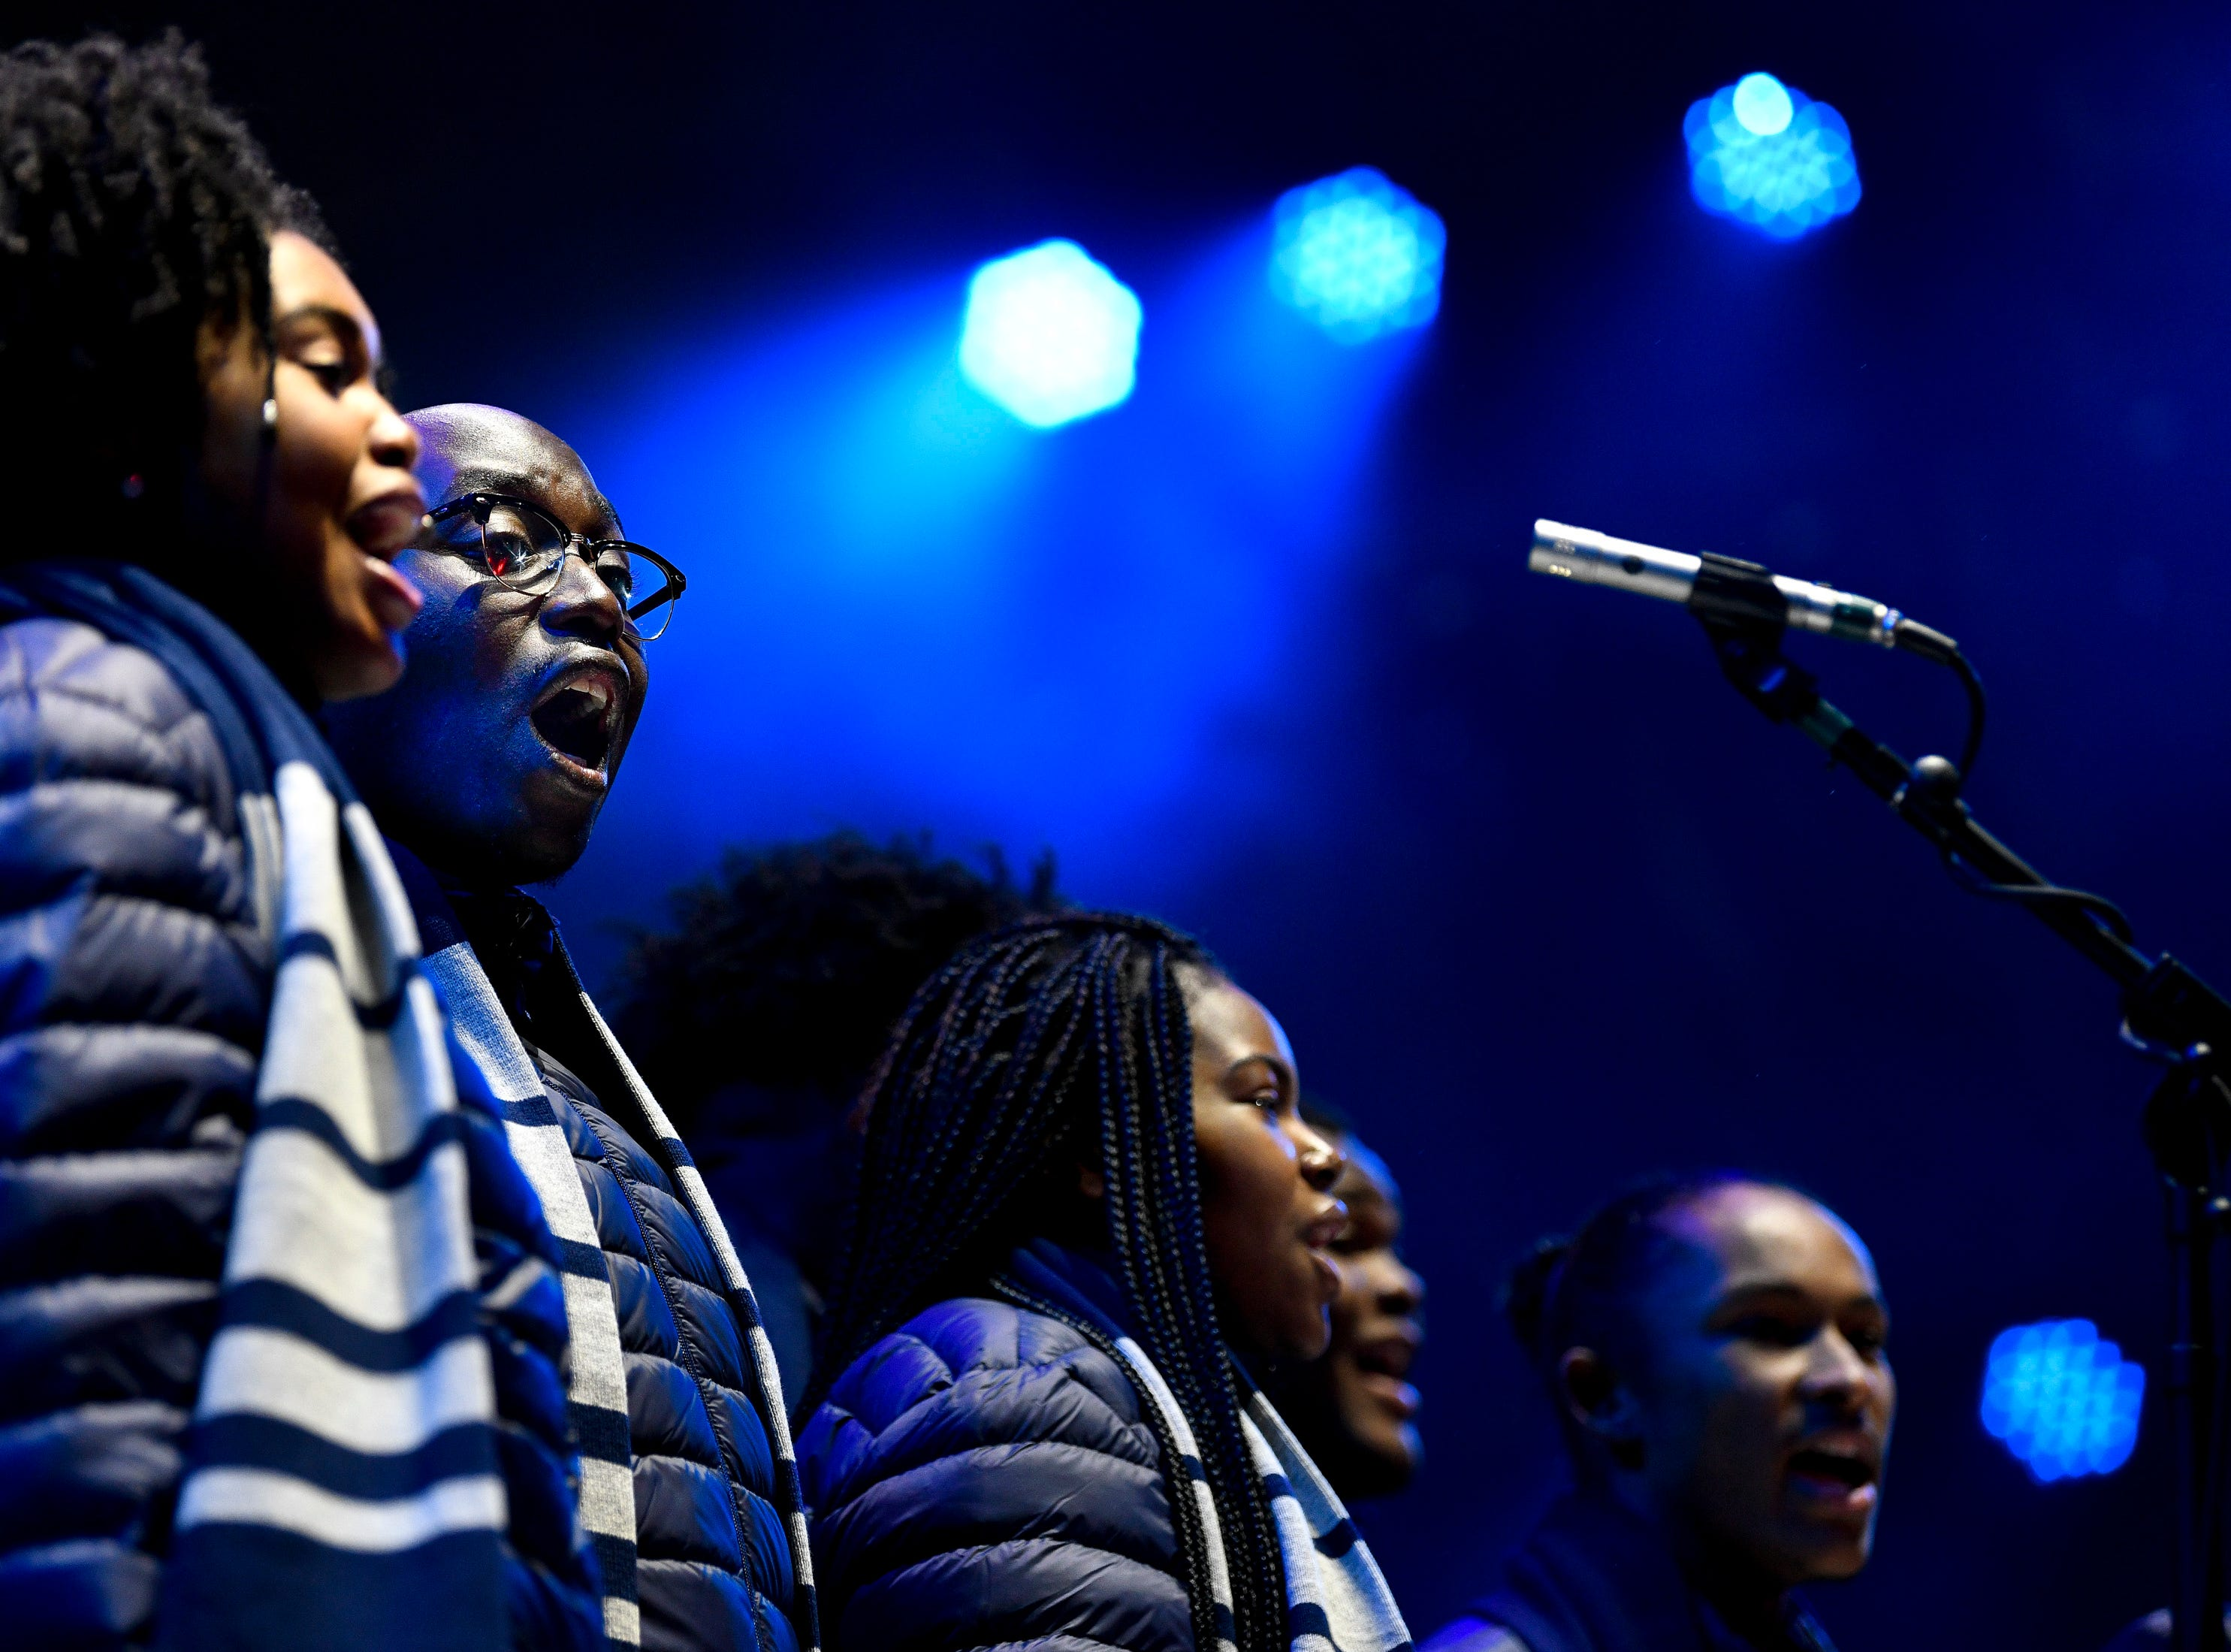 The Fisk Jubilee Singers perform during the Jack Daniel's Music City Midnight: New Year's Eve event at Bicentennial Capitol Mall State Park in Nashville, Tenn., Monday, Dec. 31, 2018.